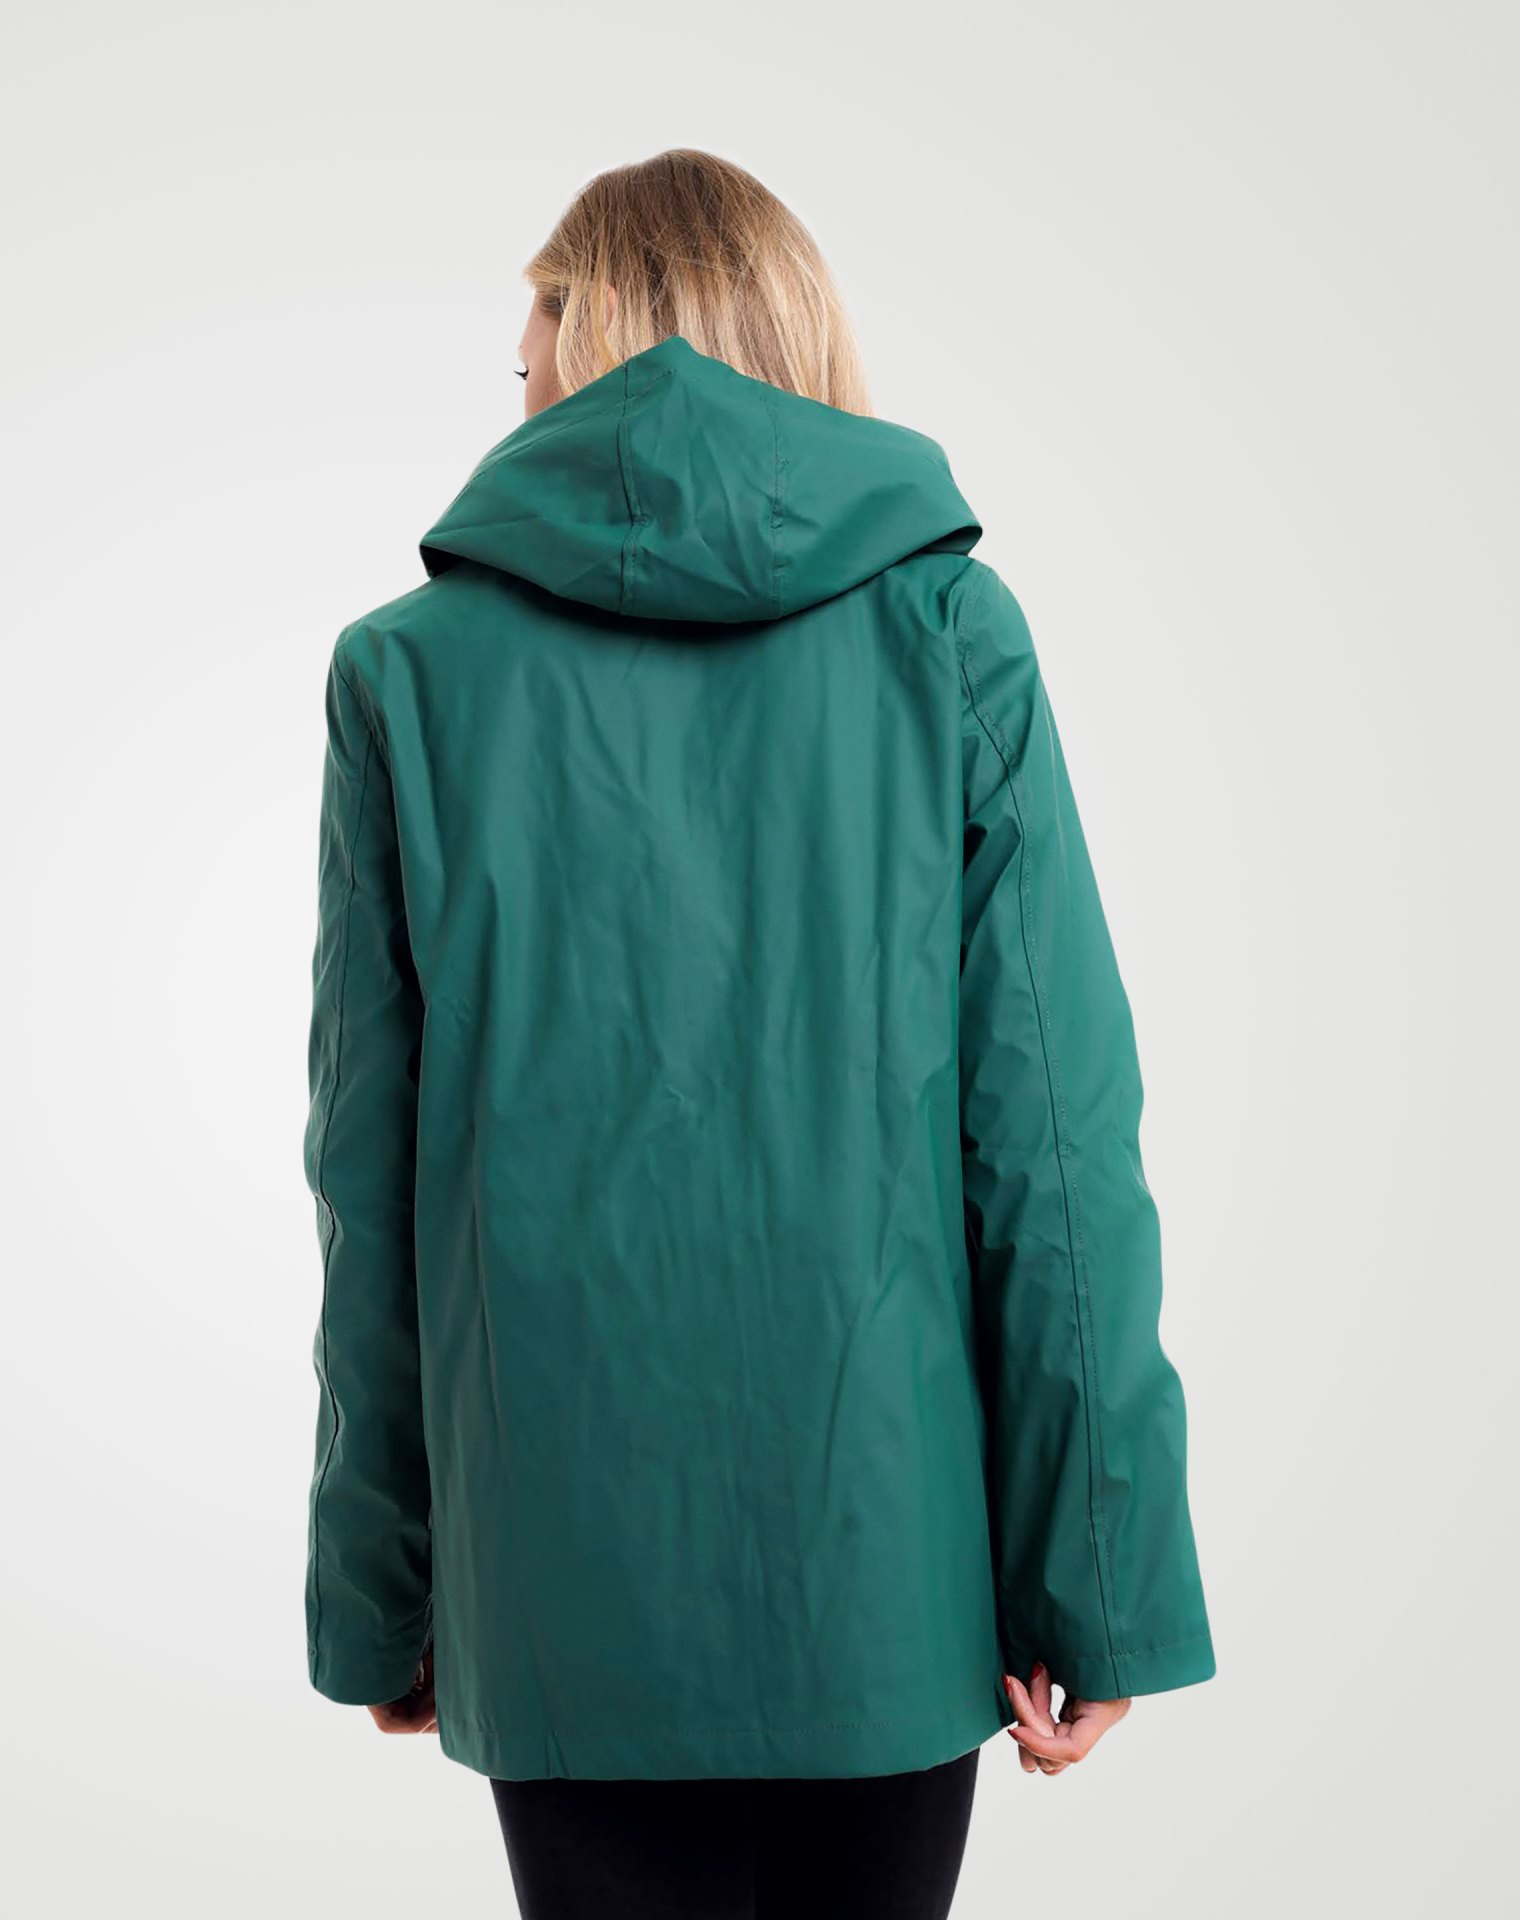 Image 3 of Womens Hooded Raincoat Jacket color Green and sizes 8,10,12,14 from Noroze